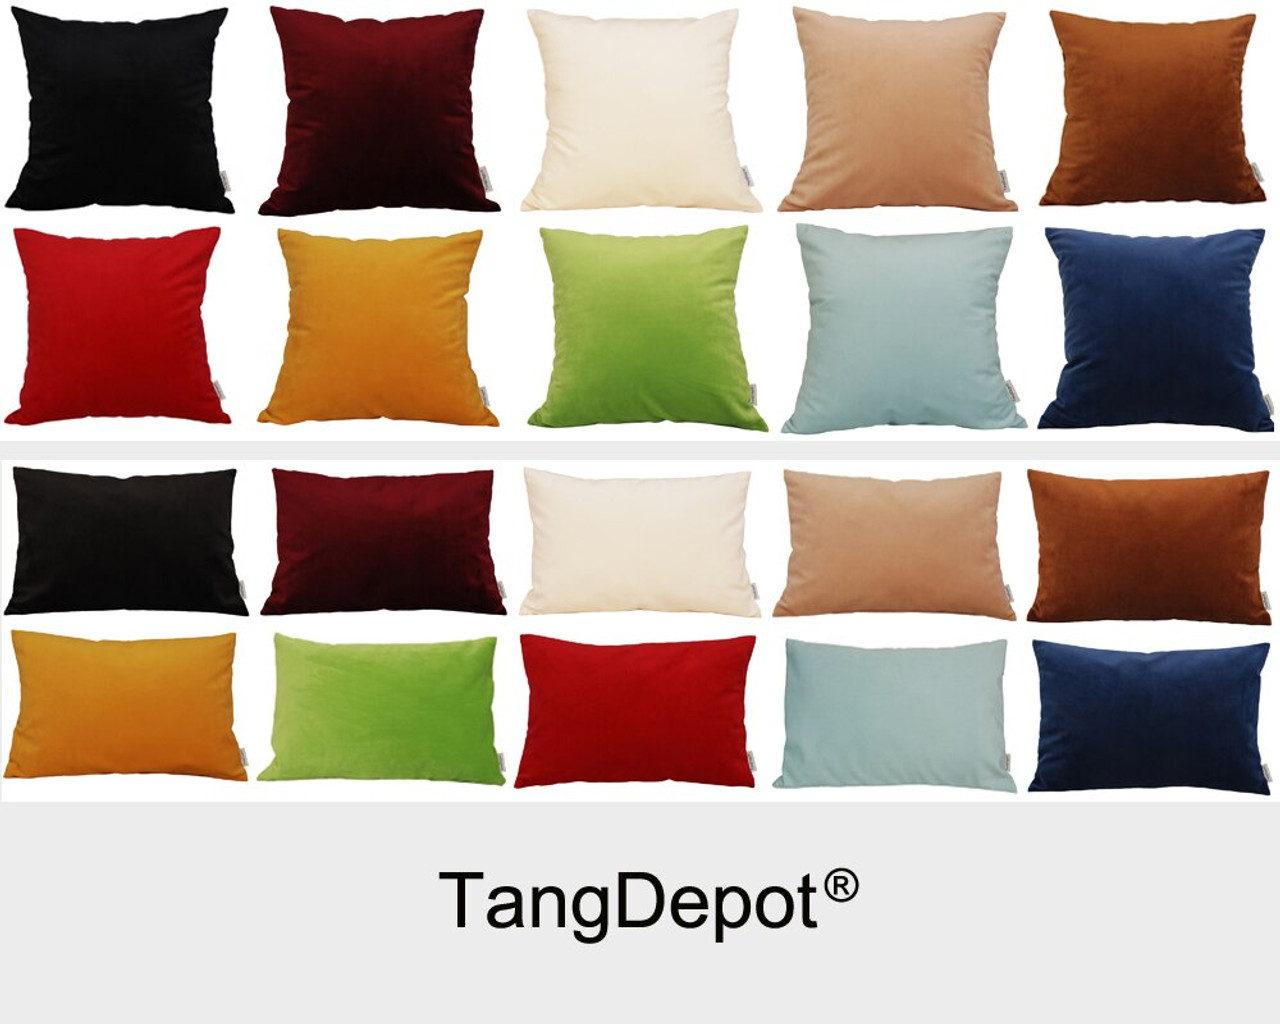 tangdepot solid velvet throw pillow cover euro sham cushion sham super luxury soft pillow cases many color size options